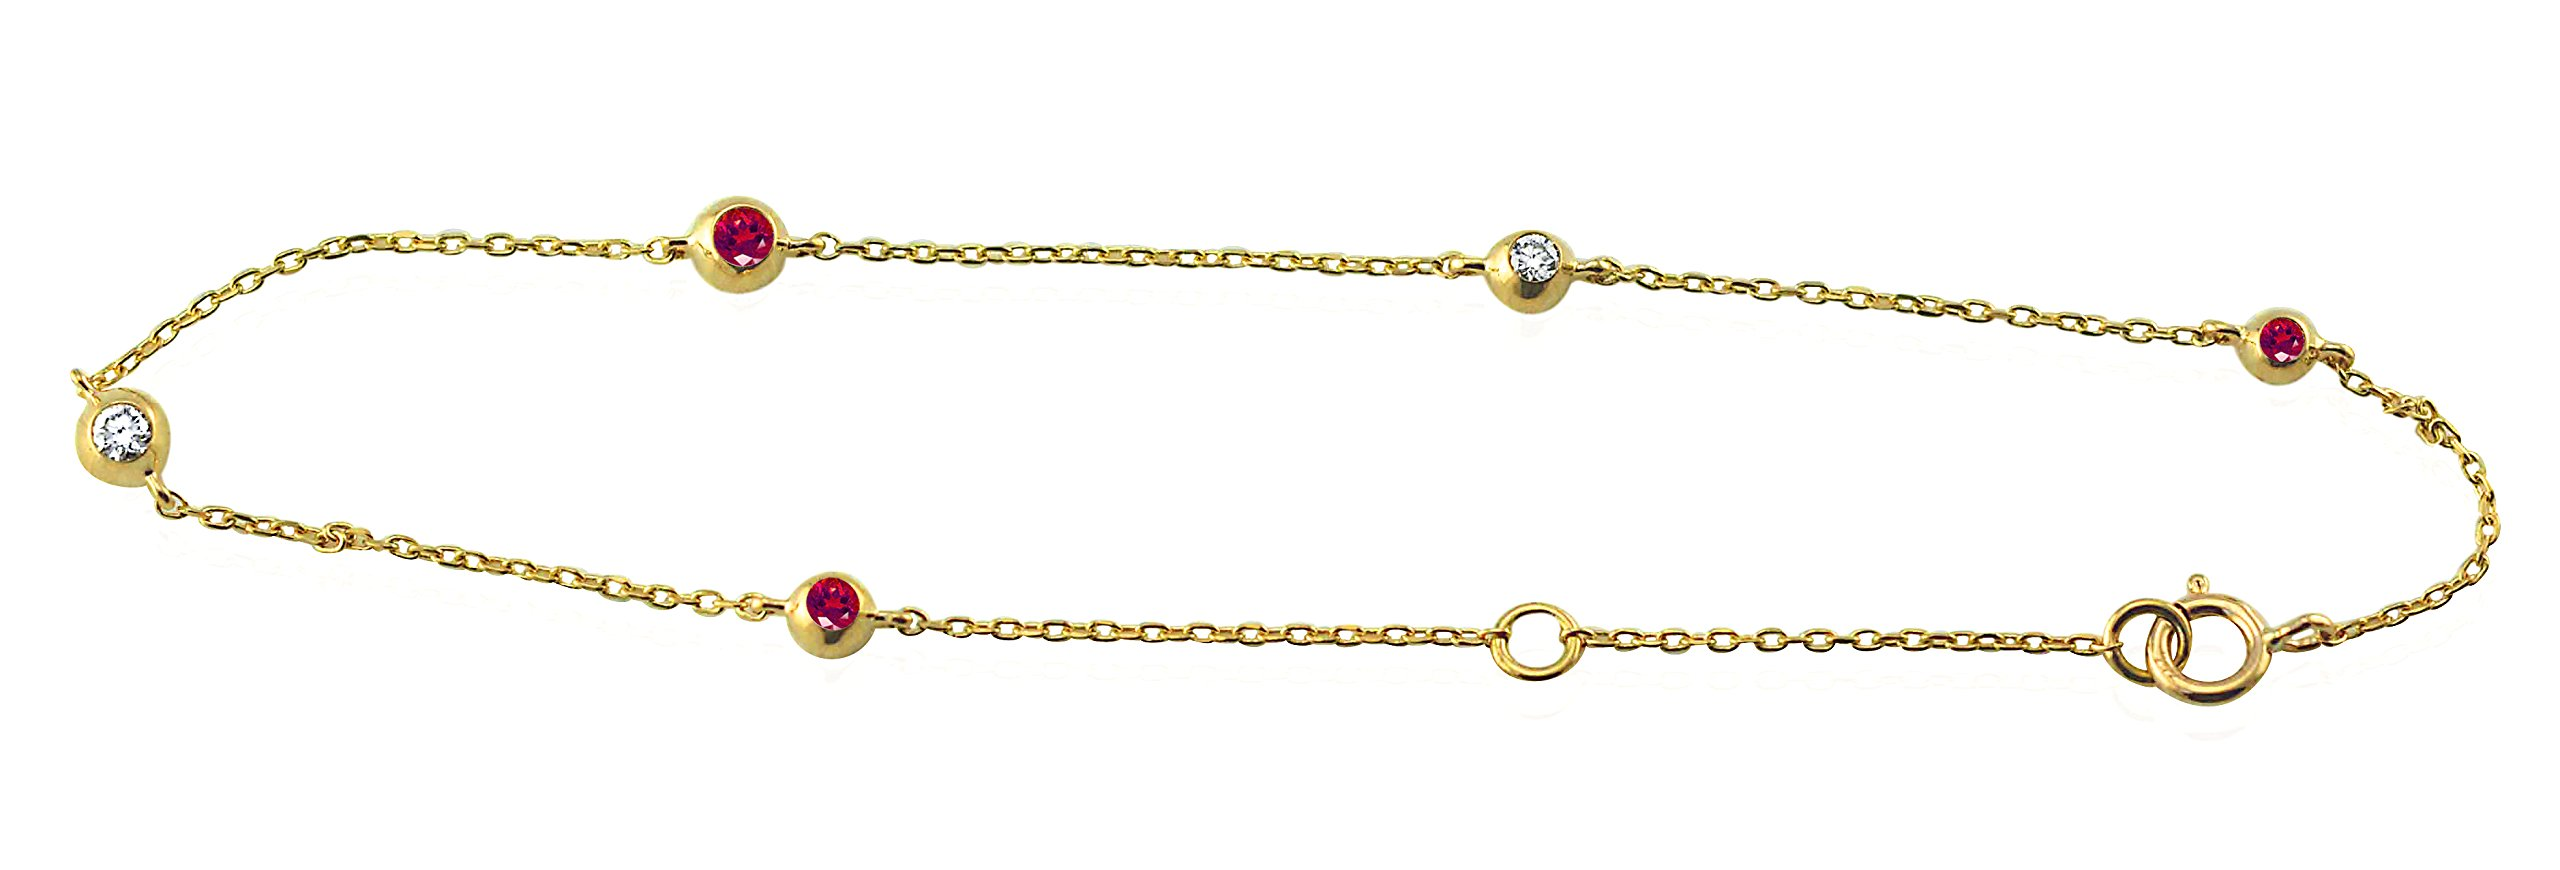 14K Yellow Gold 0.15 Ct. Natural Real Round Diamond & Red Ruby Adjustable Ball Chain Bracelet 7 inch